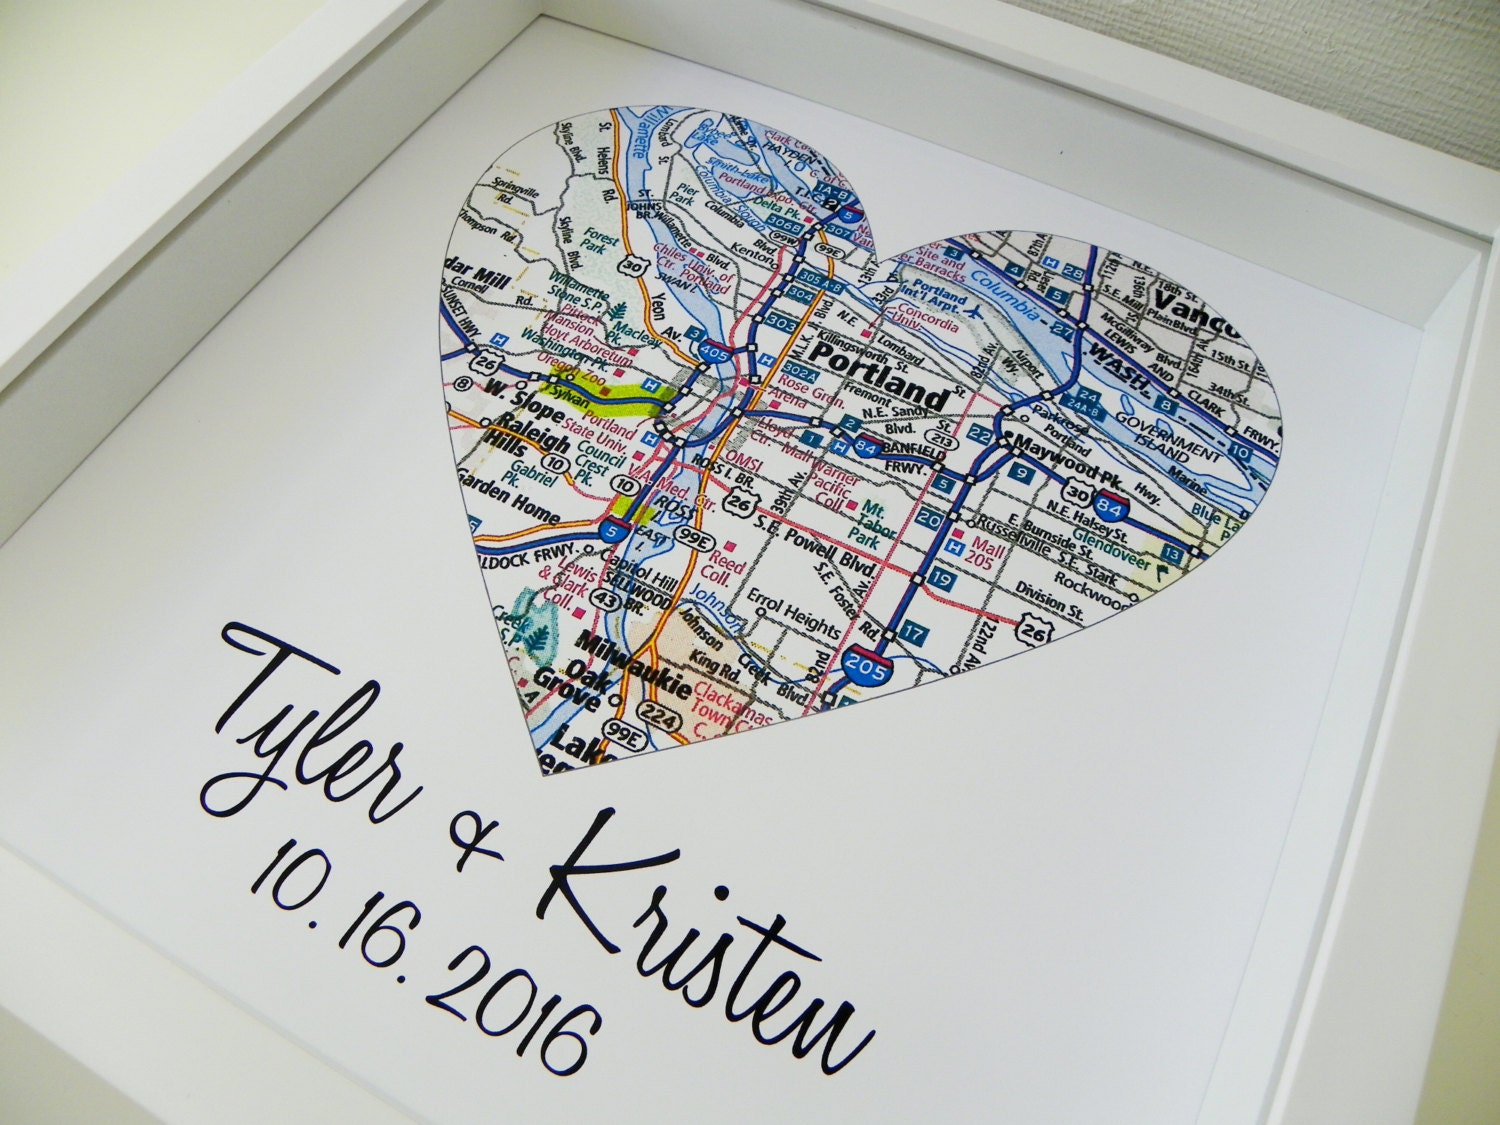 Paper Wedding Anniversary Gift Ideas Uk : First Anniversary Gift Paper Gift Map Heart Art FRAMED Any